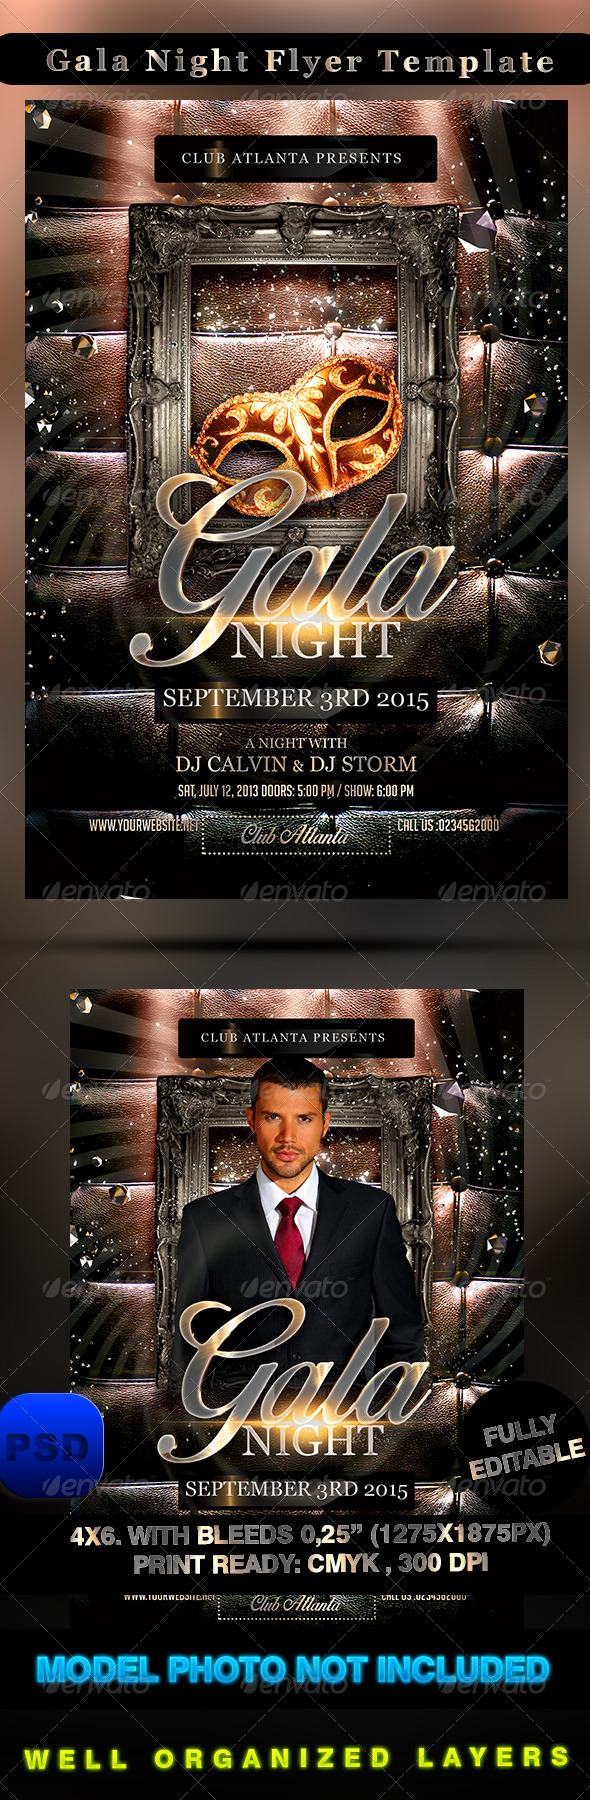 Gala Night Flyer Template